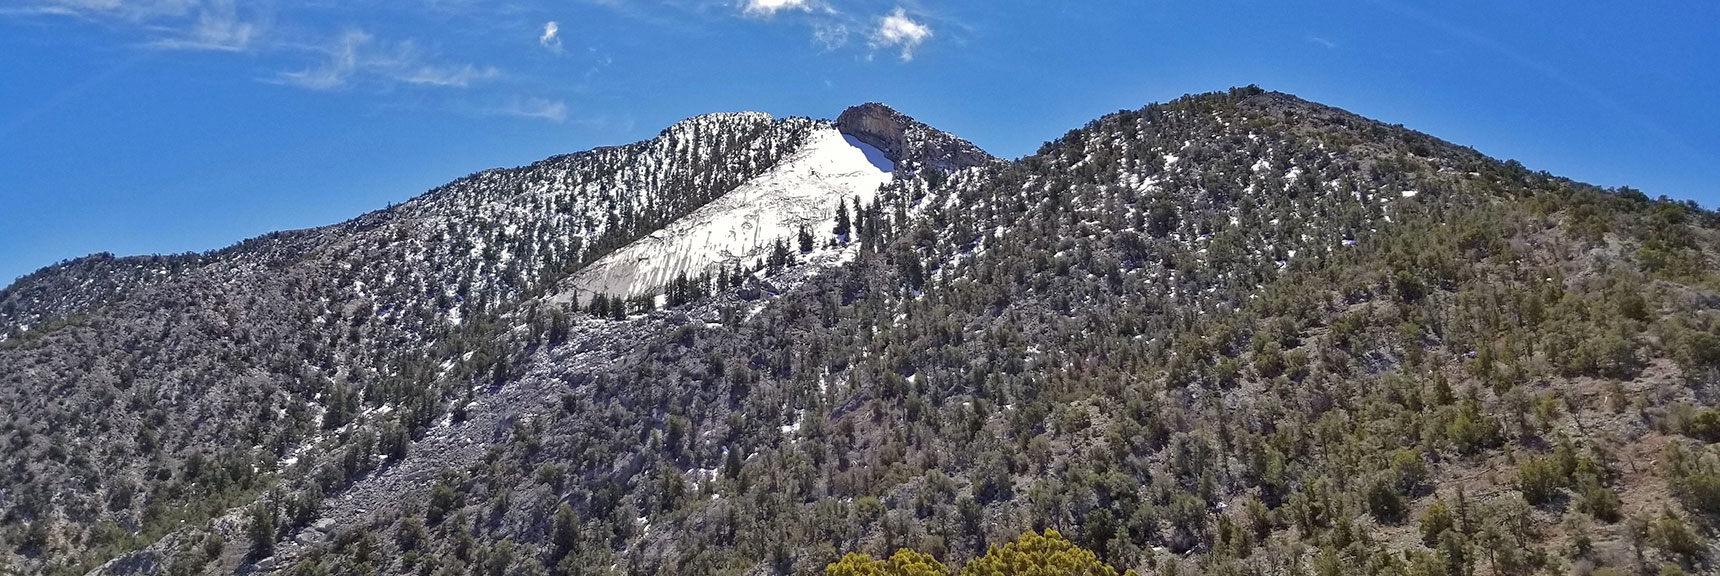 View of La Madre Mountain Summit from Just North of La Madre Mt., Nevada